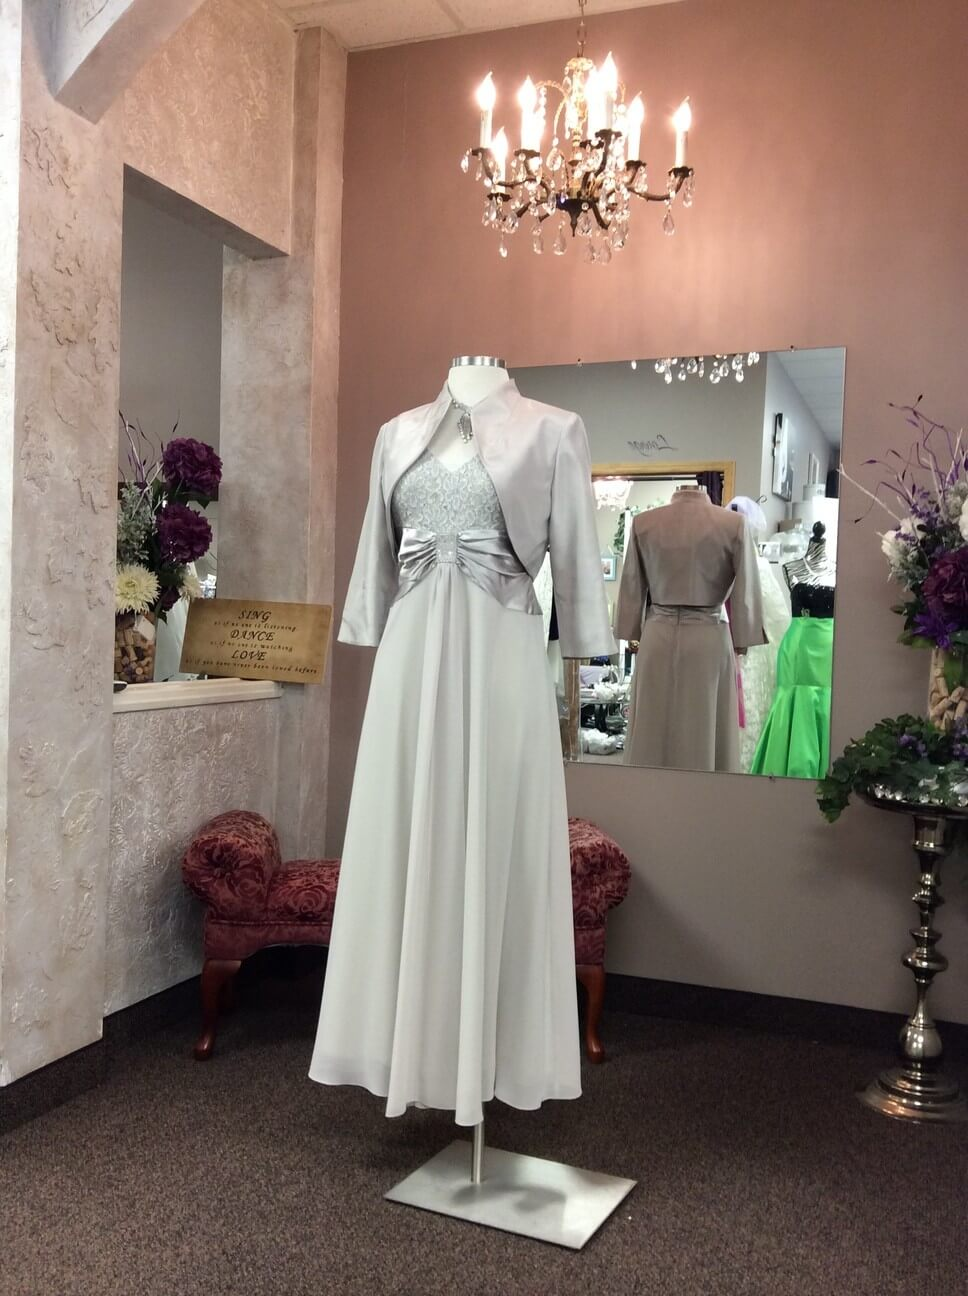 Img 3772 for Wedding dress rental utah